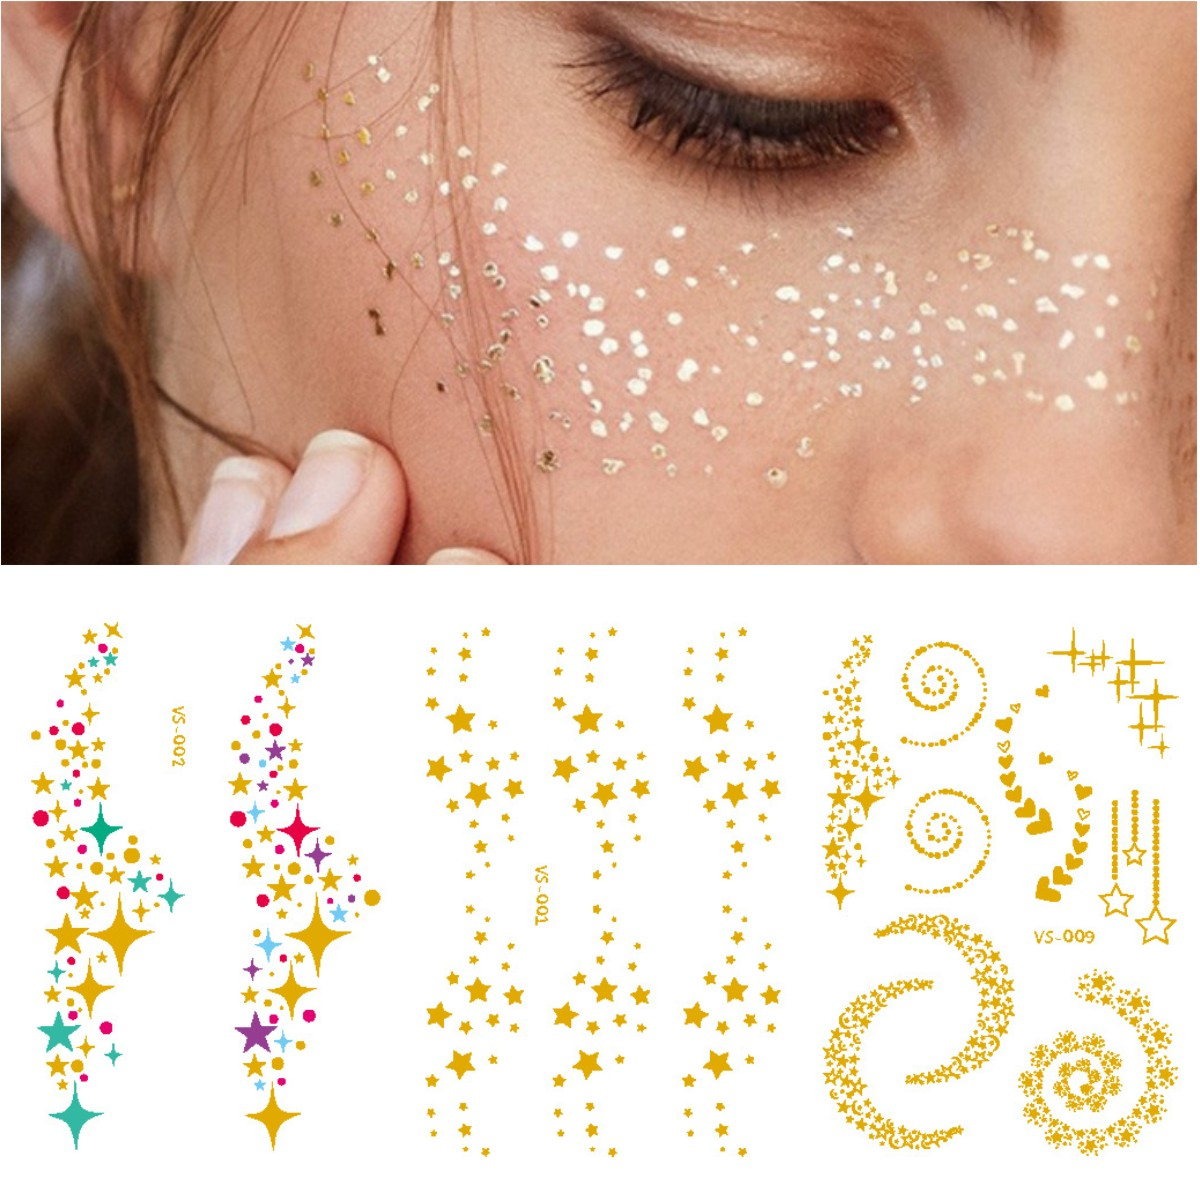 10pcs Gold Face Tattoos Bronzing Flash Tattoo Temporary Blocked Freckles Makeup Body Art Stickers Eye Decals Bride Tribe Party in Temporary Tattoos from Beauty Health